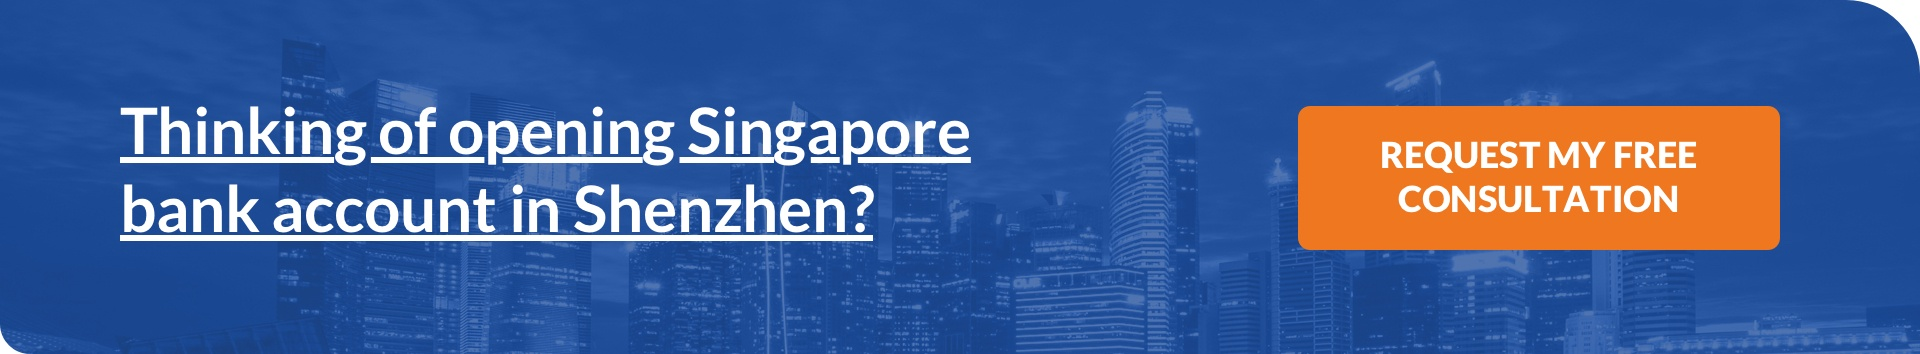 Open-Singapore-bank-account-free-consultation